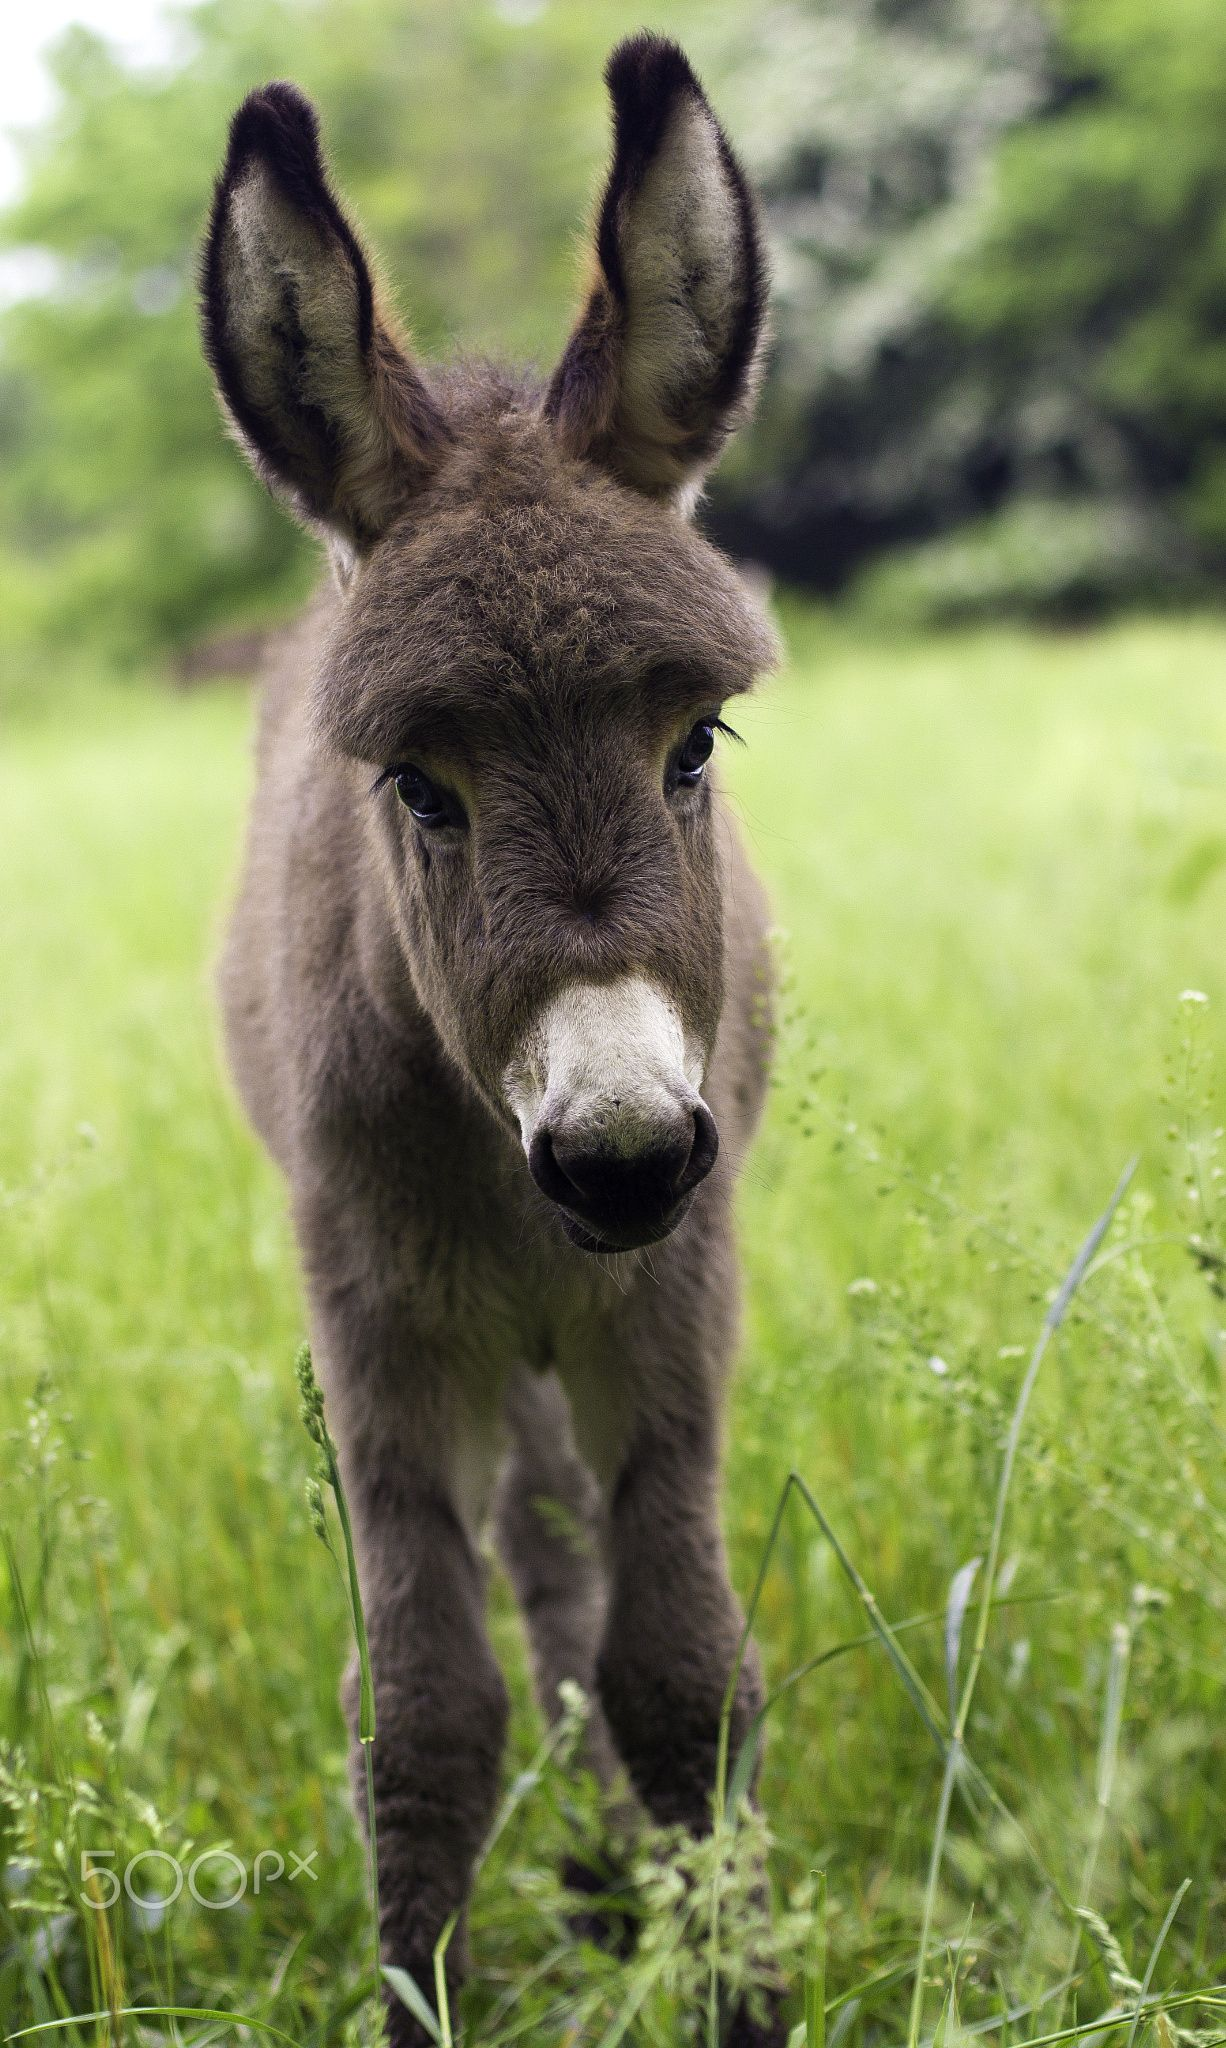 Beautiful baby donkey in Italy. title Long ears and